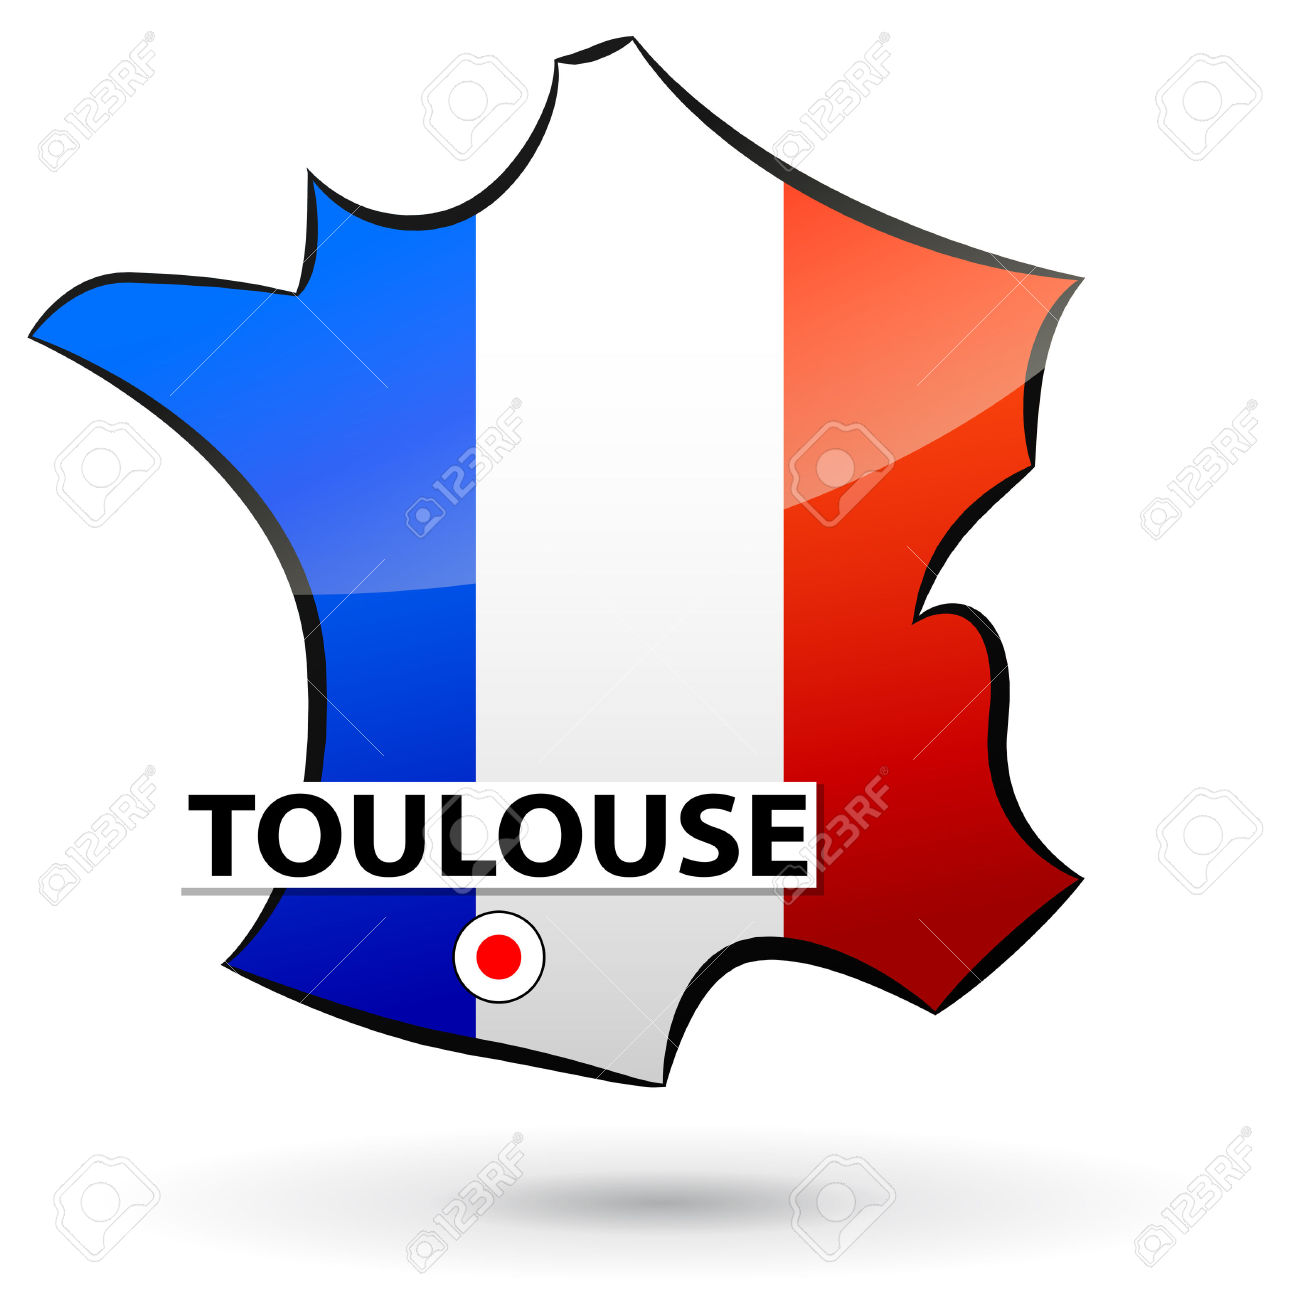 Clipart toulouse.